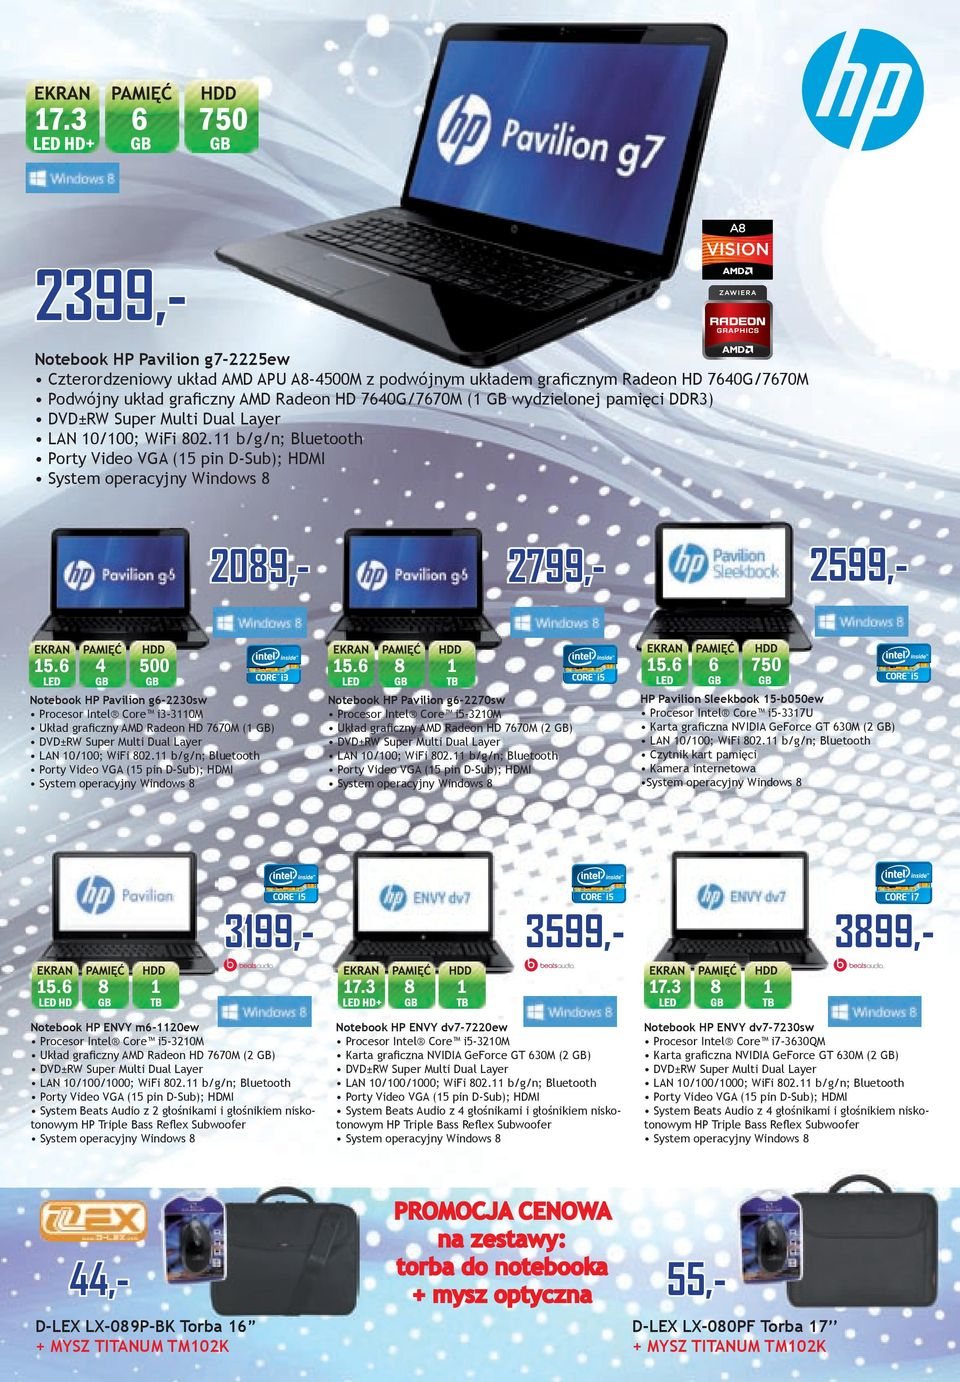 6 Notebook HP Pavilion g6-2230sw Procesor Intel Core i3-3110m Układ graficzny AMD Radeon HD 7670M (1 GB) DVD±RW Super Multi Dual Layer LAN 10/100; WiFi 802.